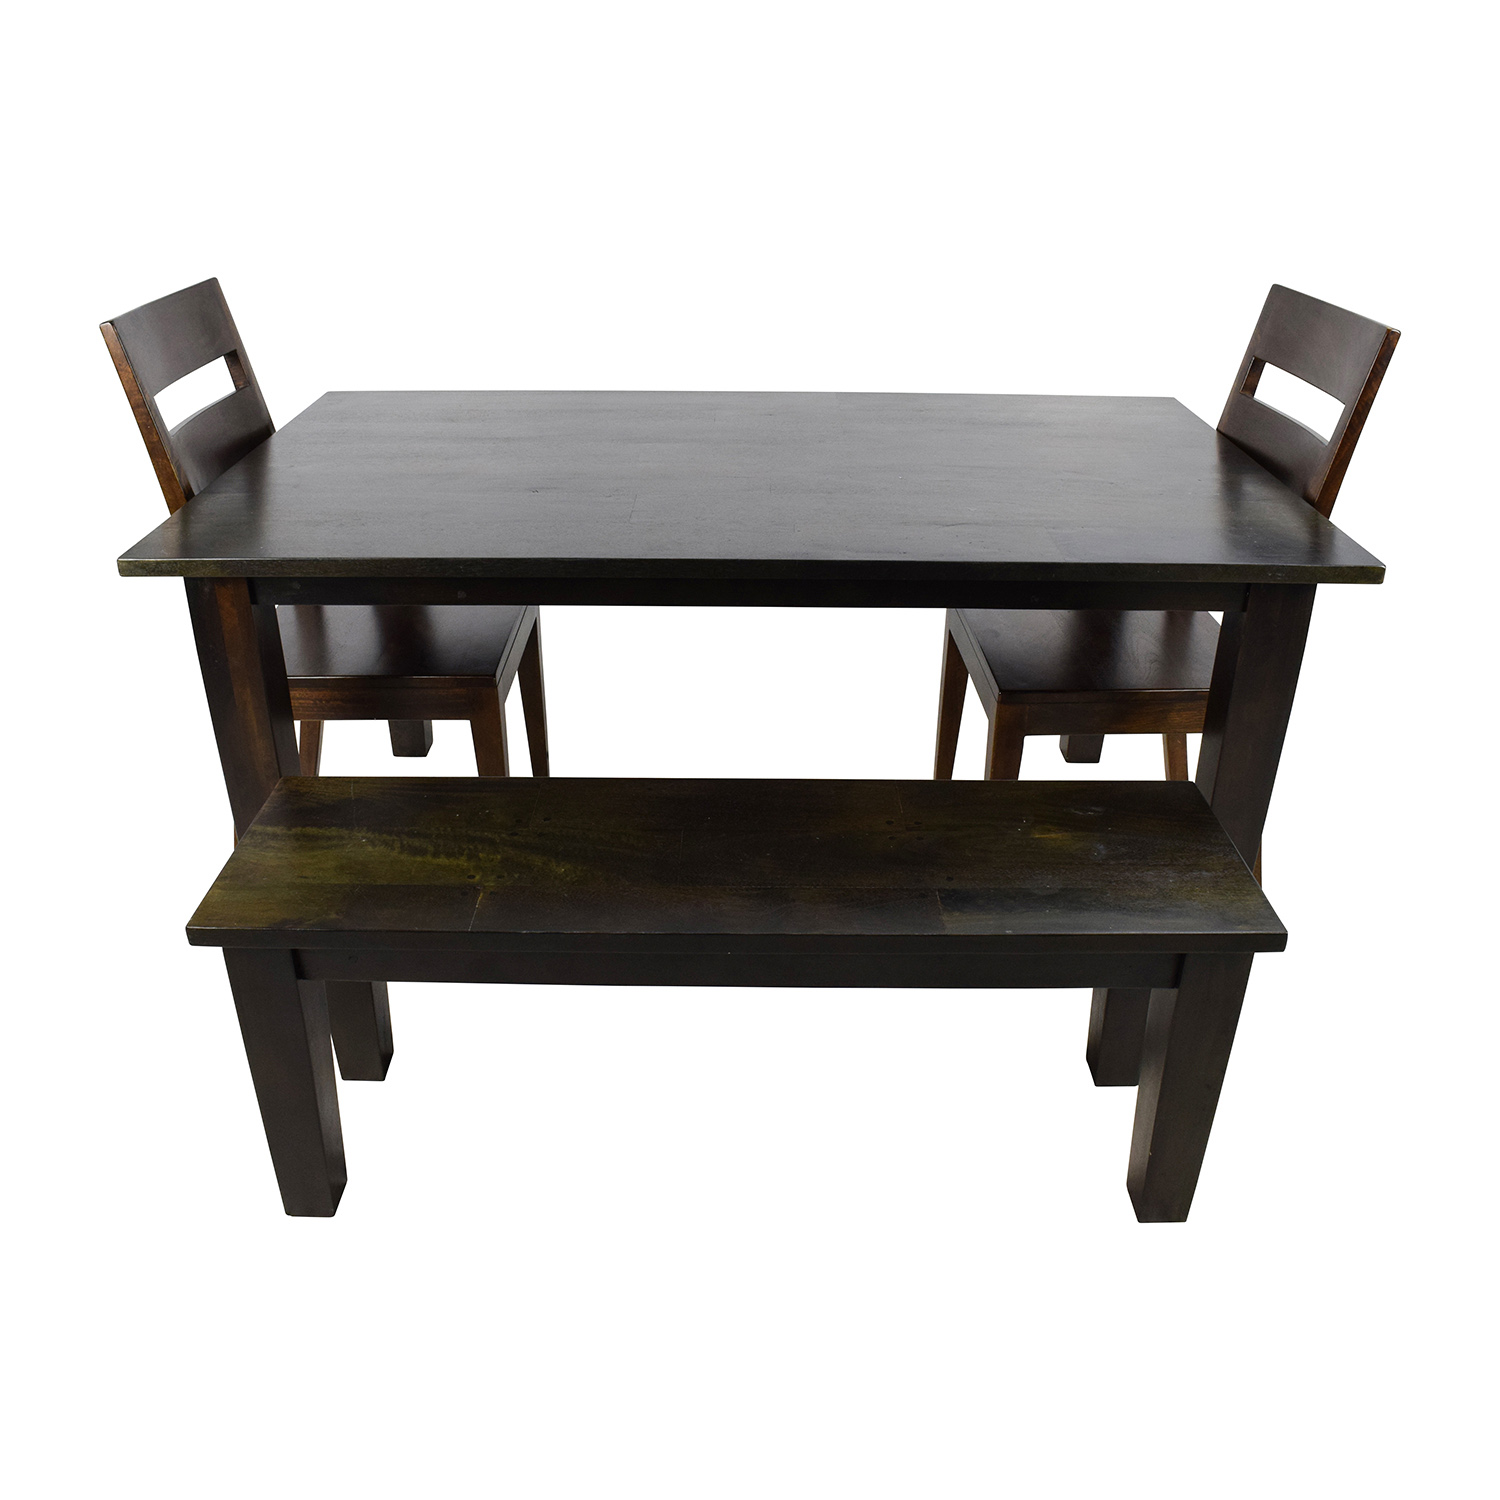 Crate and Barrel Crate & Barrel Basque Java Dining Table Set dimensions